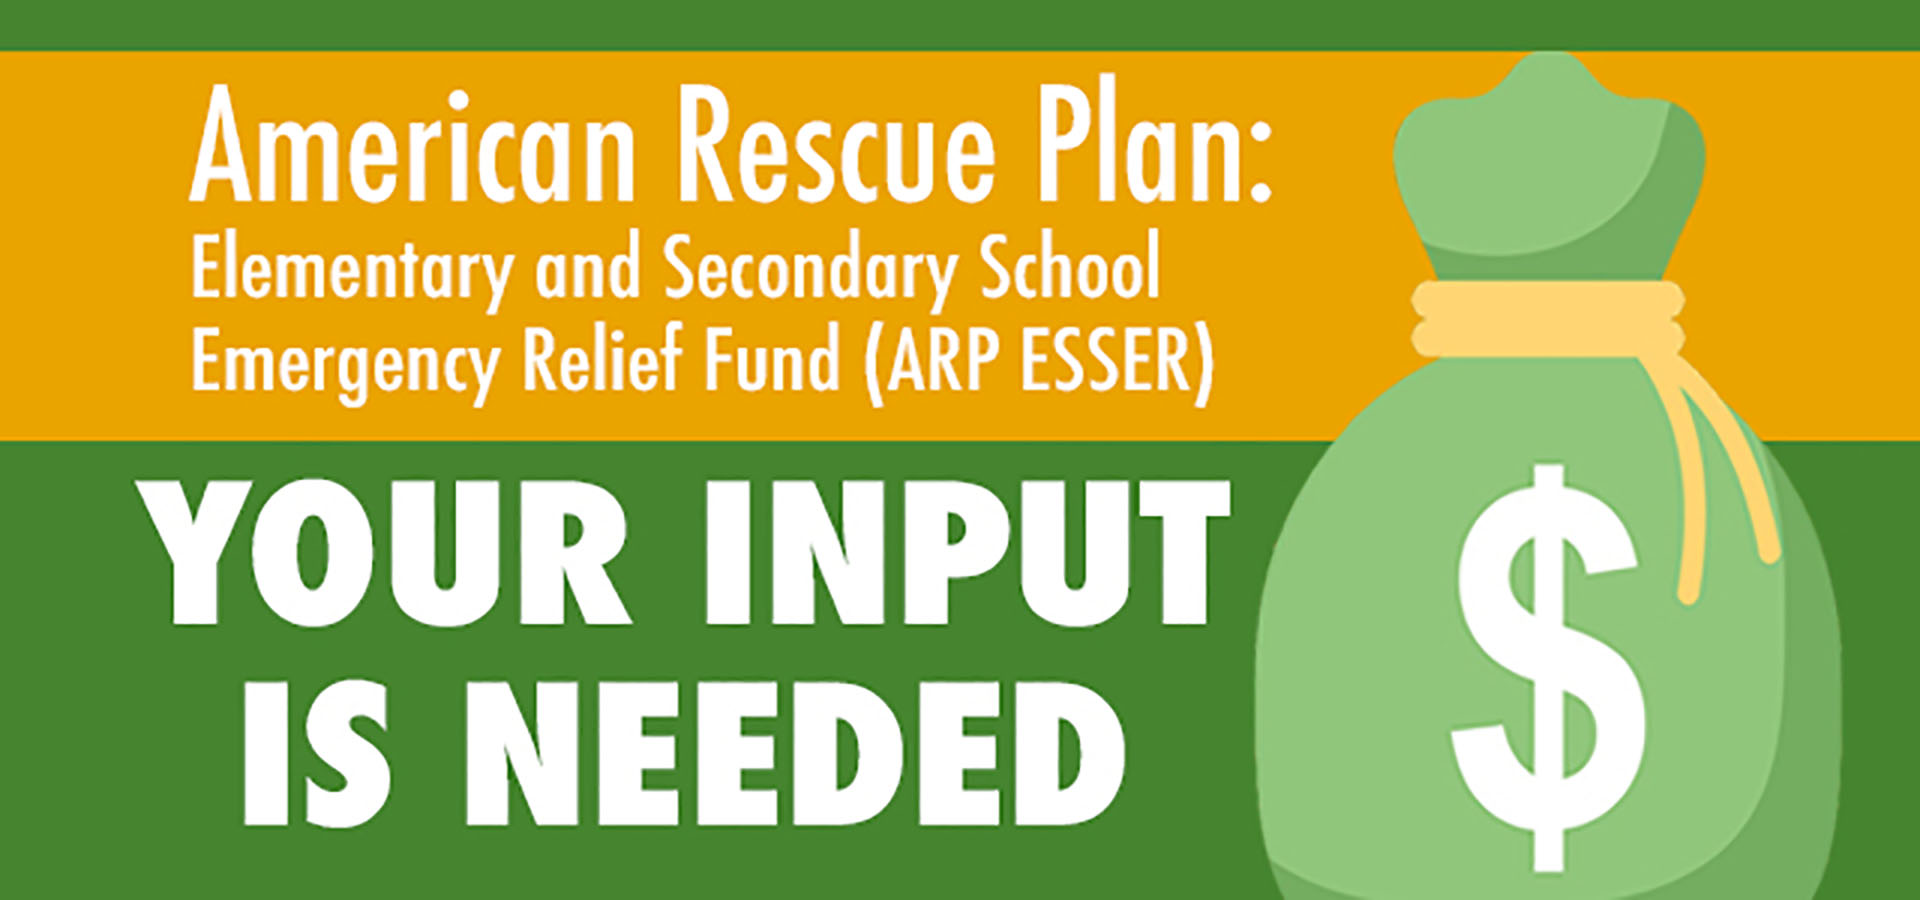 Feedback for American Rescue Plan funding sought